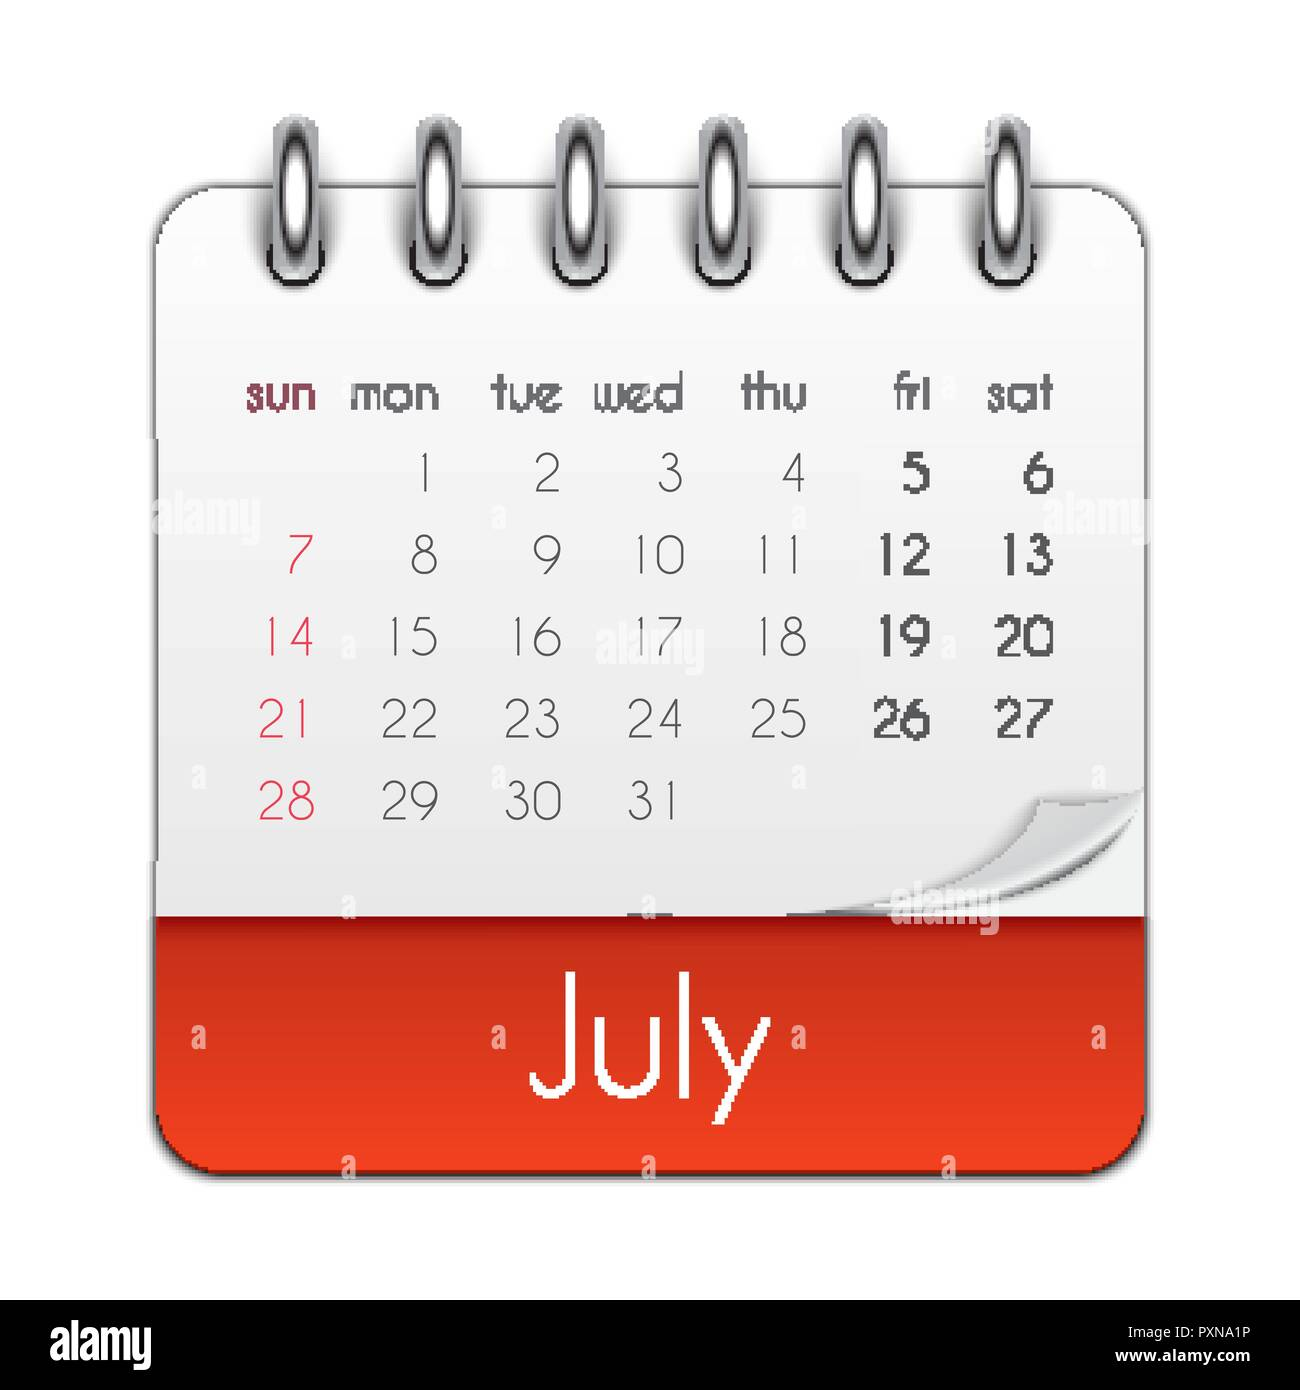 Calendario Julio 2019 Vector.Week Stock Vector Images Page 52 Alamy